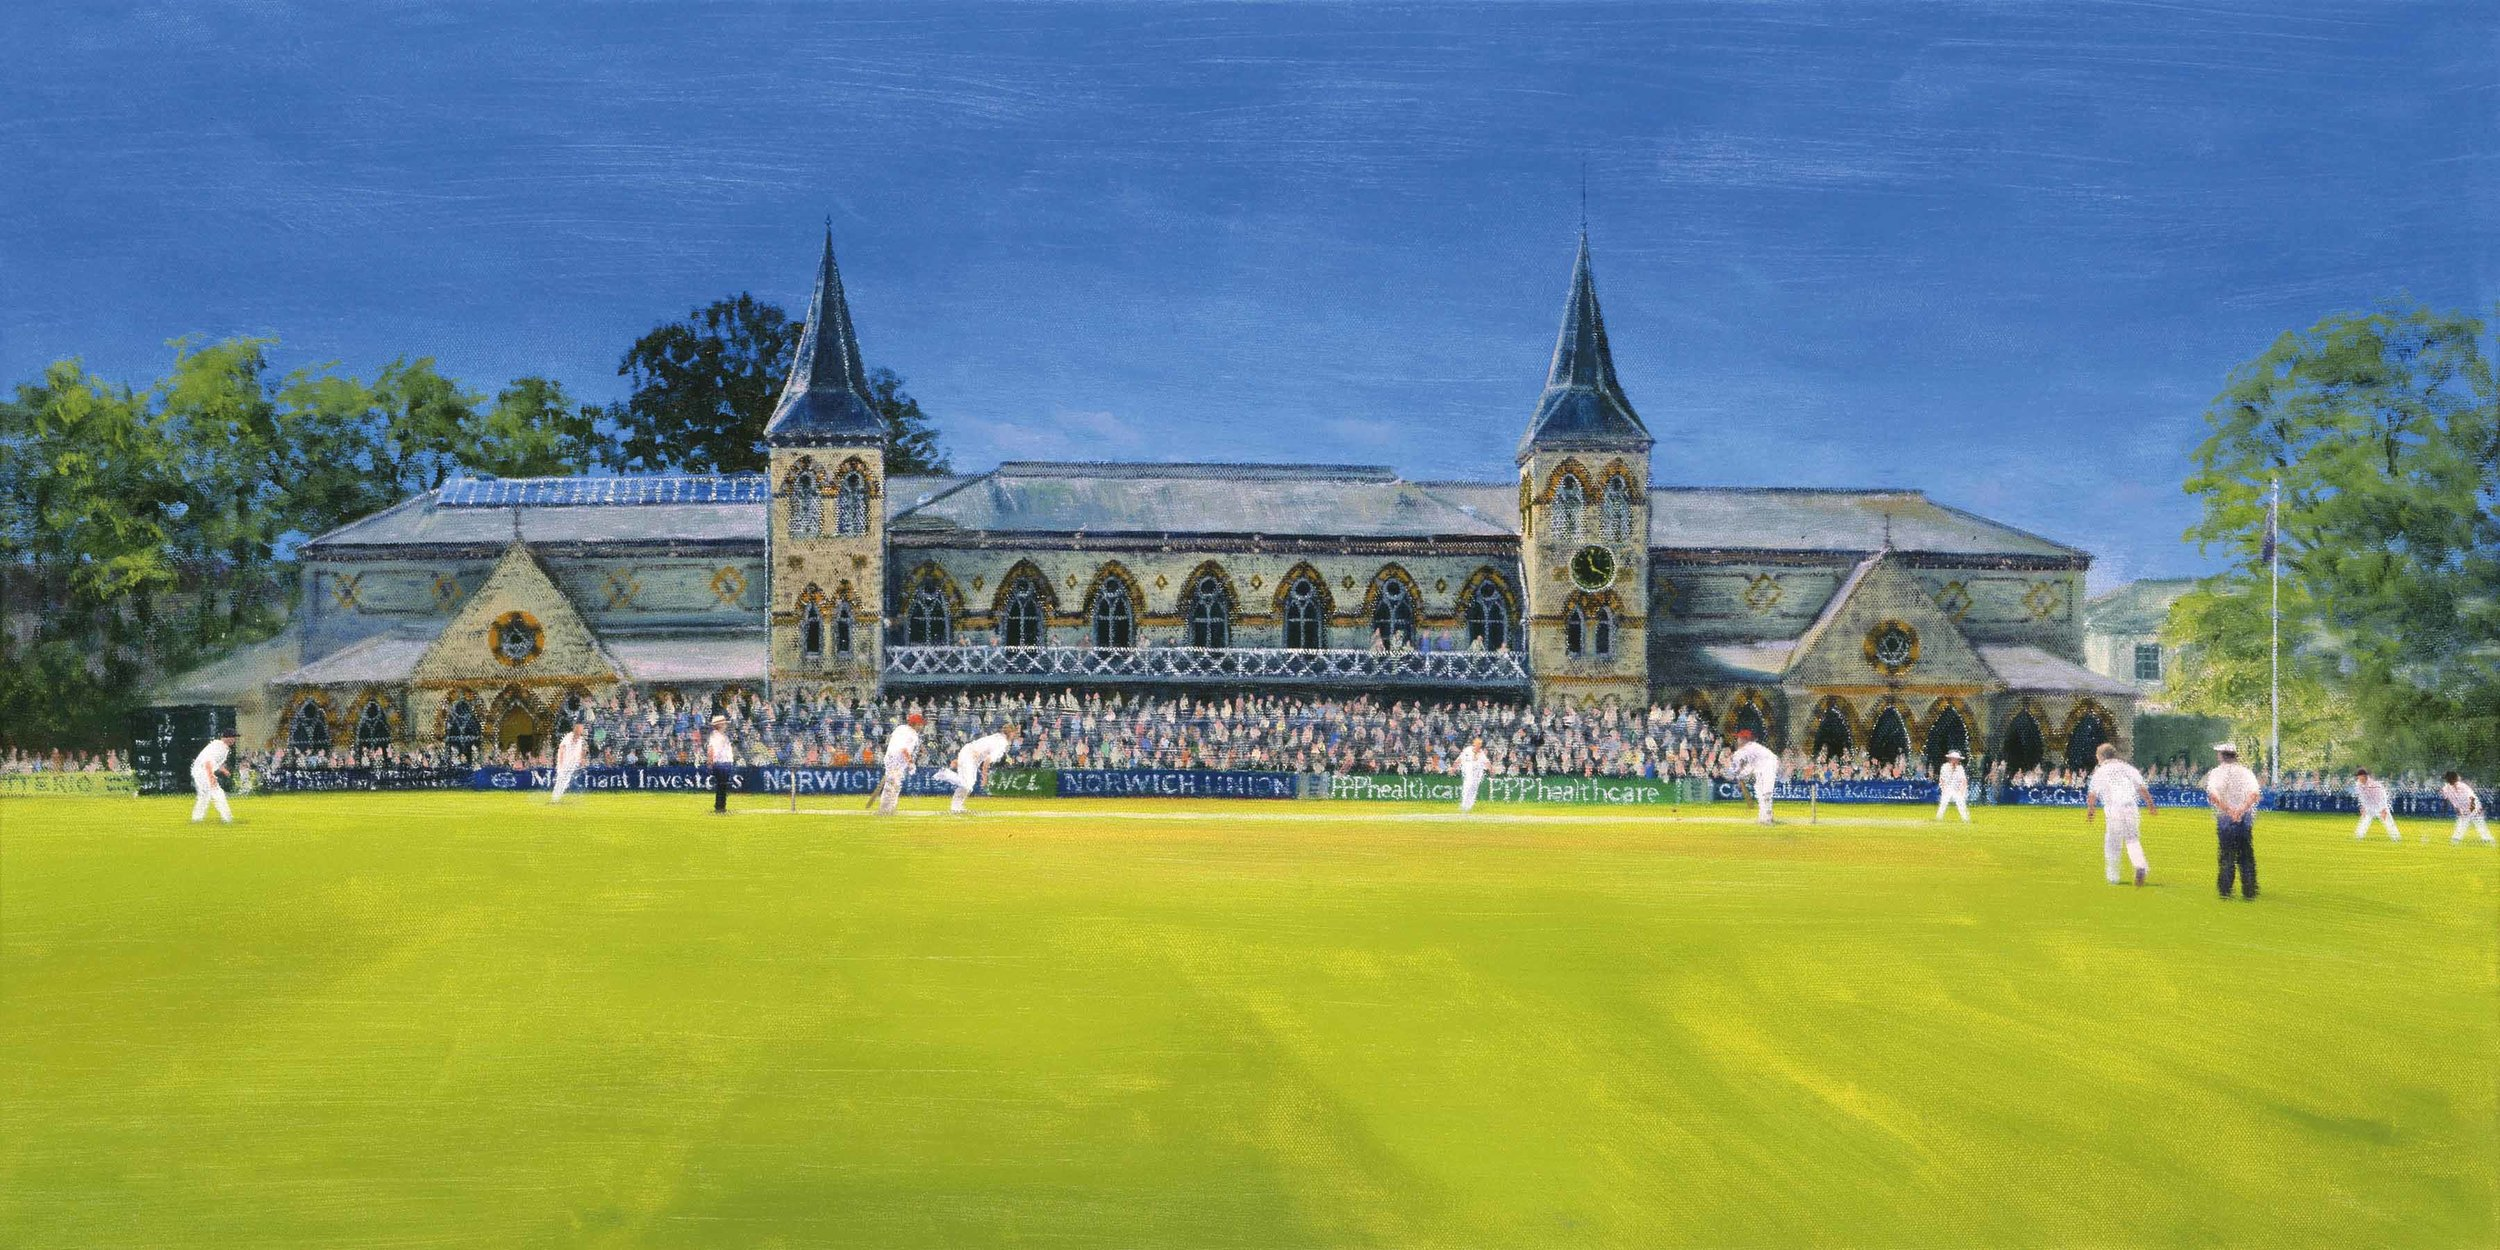 Cricket-On-College-Field, Jack Russell Gallery  sss.jpg